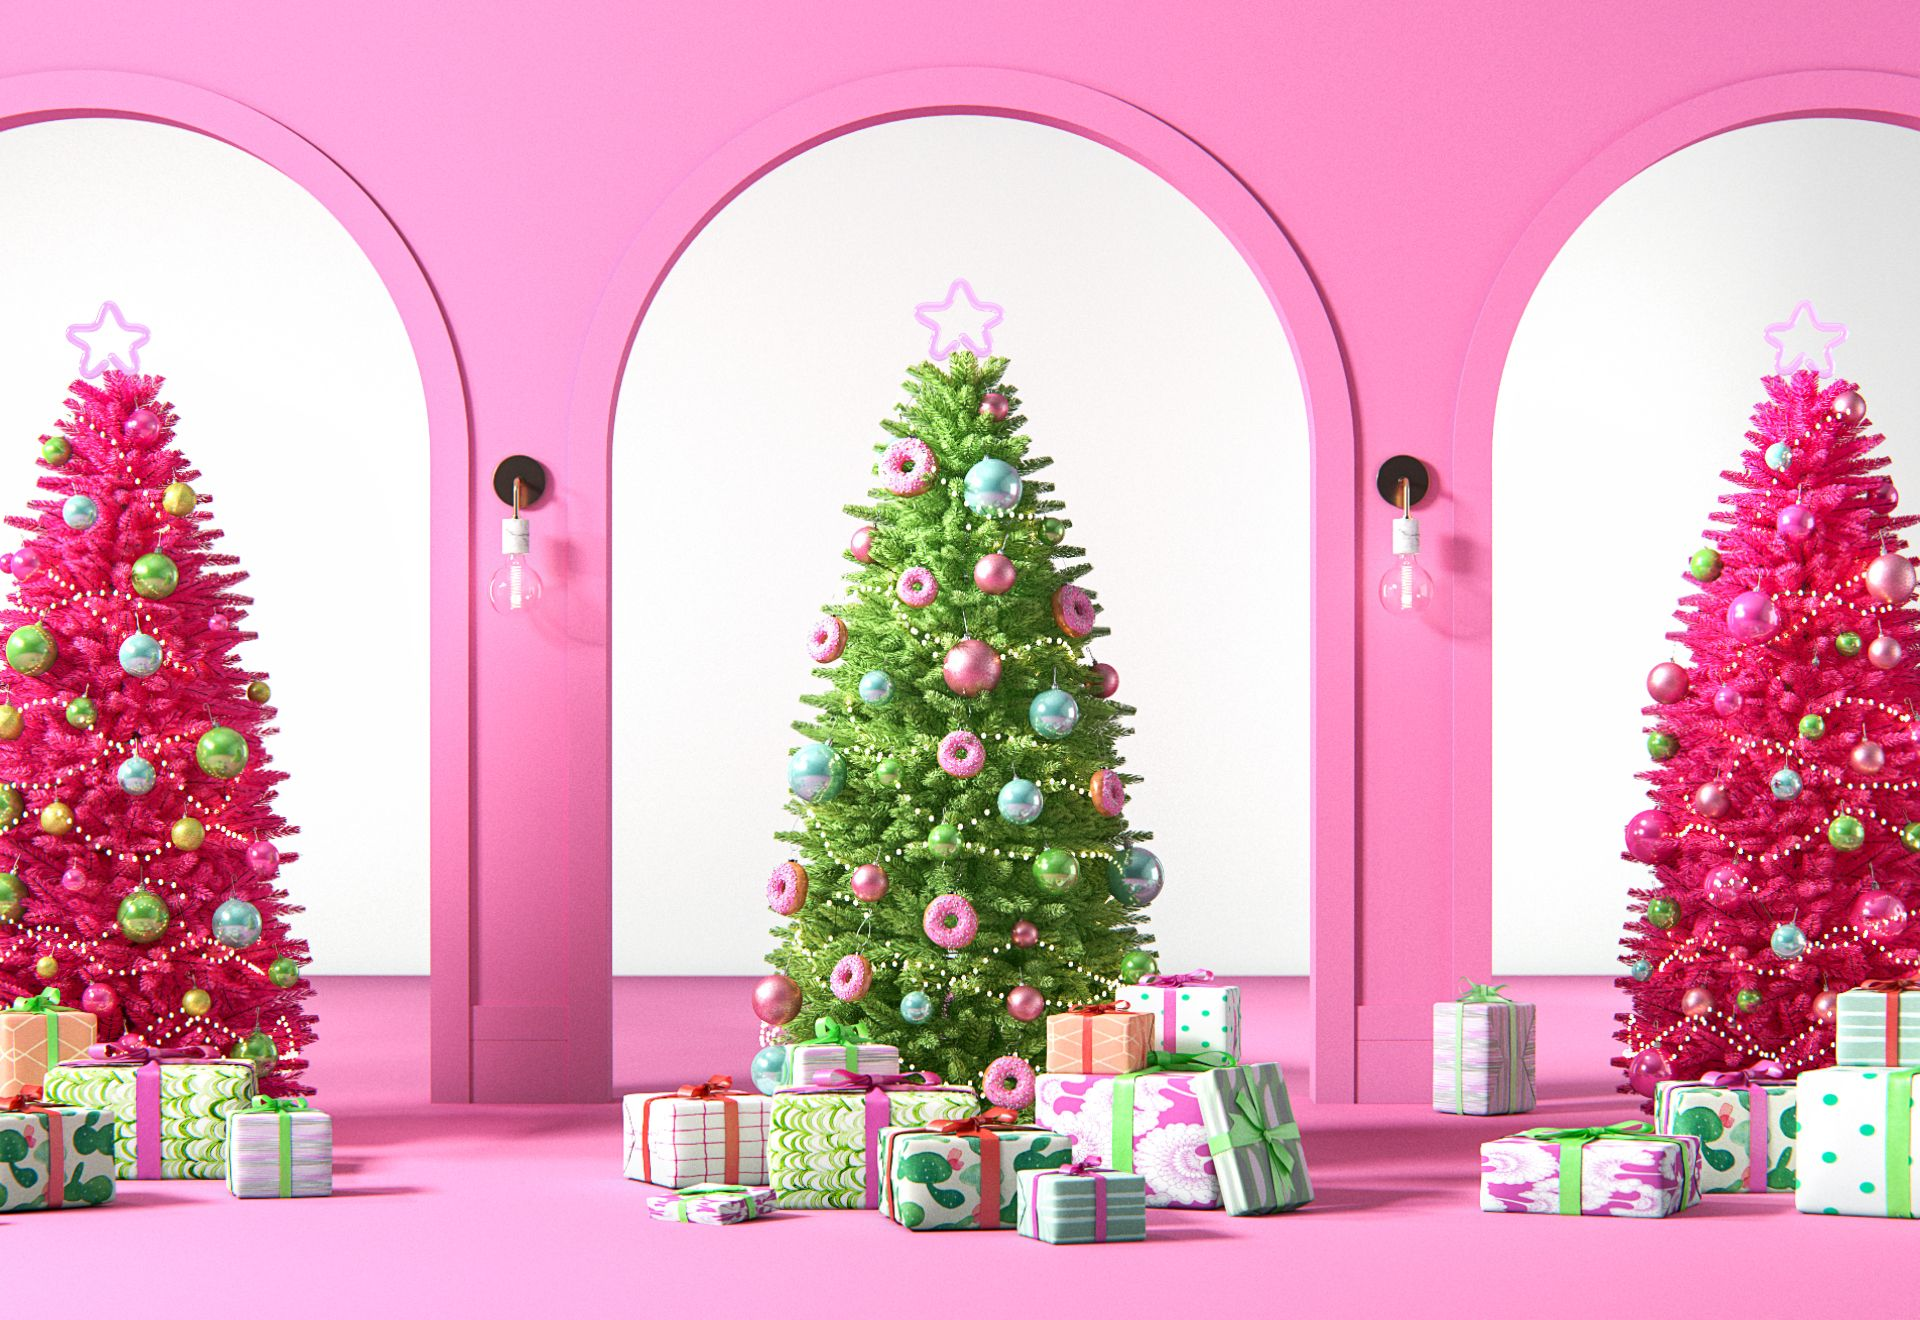 Search Volume For Pink Christmas Trees Is Up 125 This Year